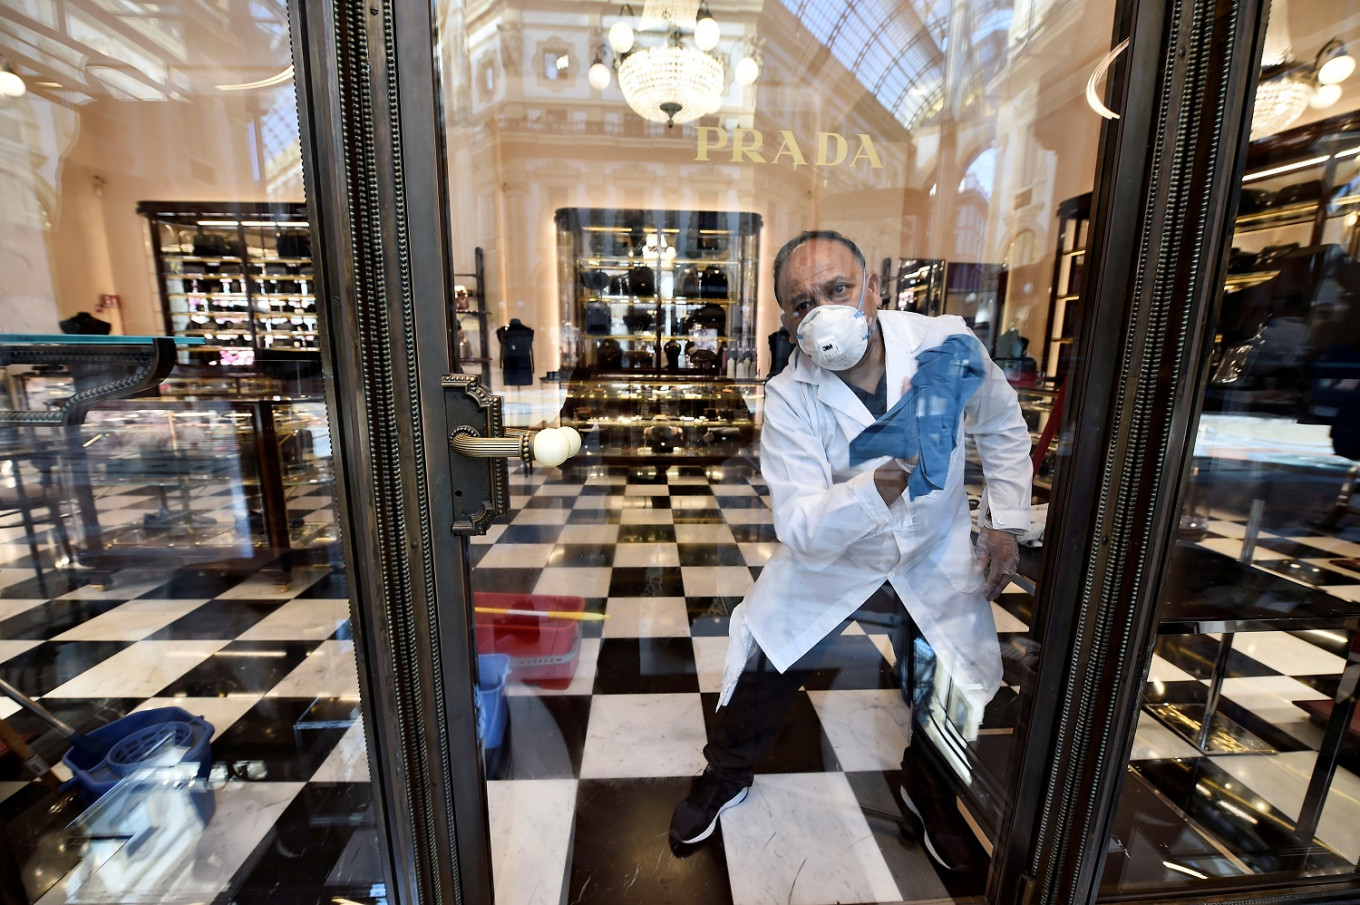 Without tourists, Europe's luxury shops struggle to reopen in style